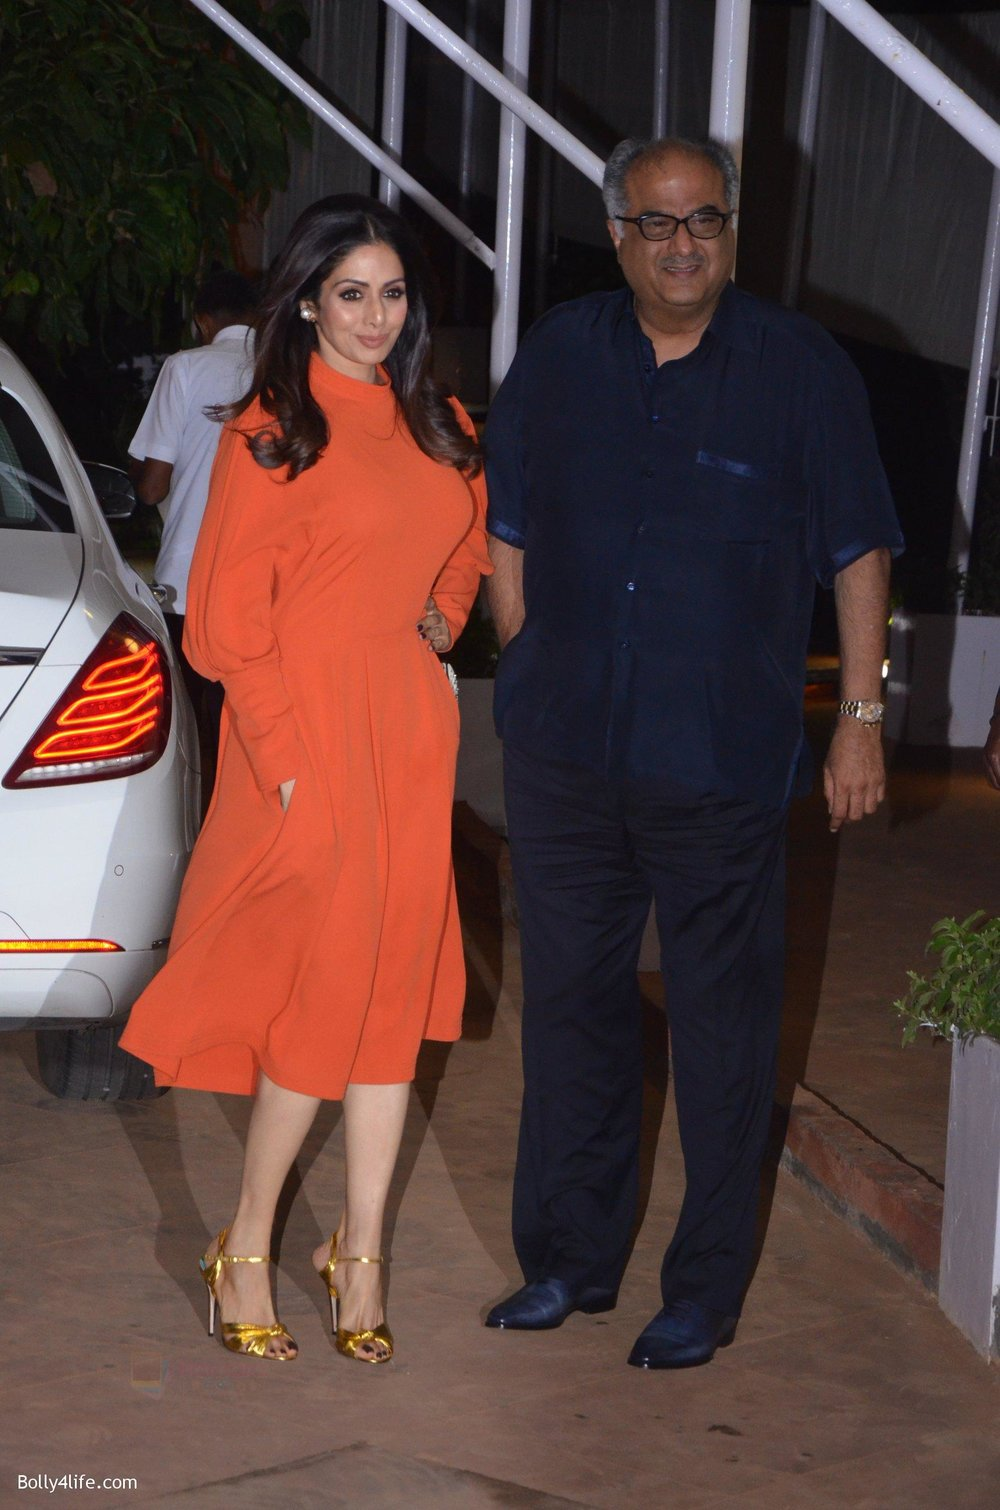 Boney-Kapoor-Sridevi-at-Reema-jain-bday-party-in-Amadeus-NCPA-on-28th-Sept-2016-1033_57ecbc976cfcf.jpg